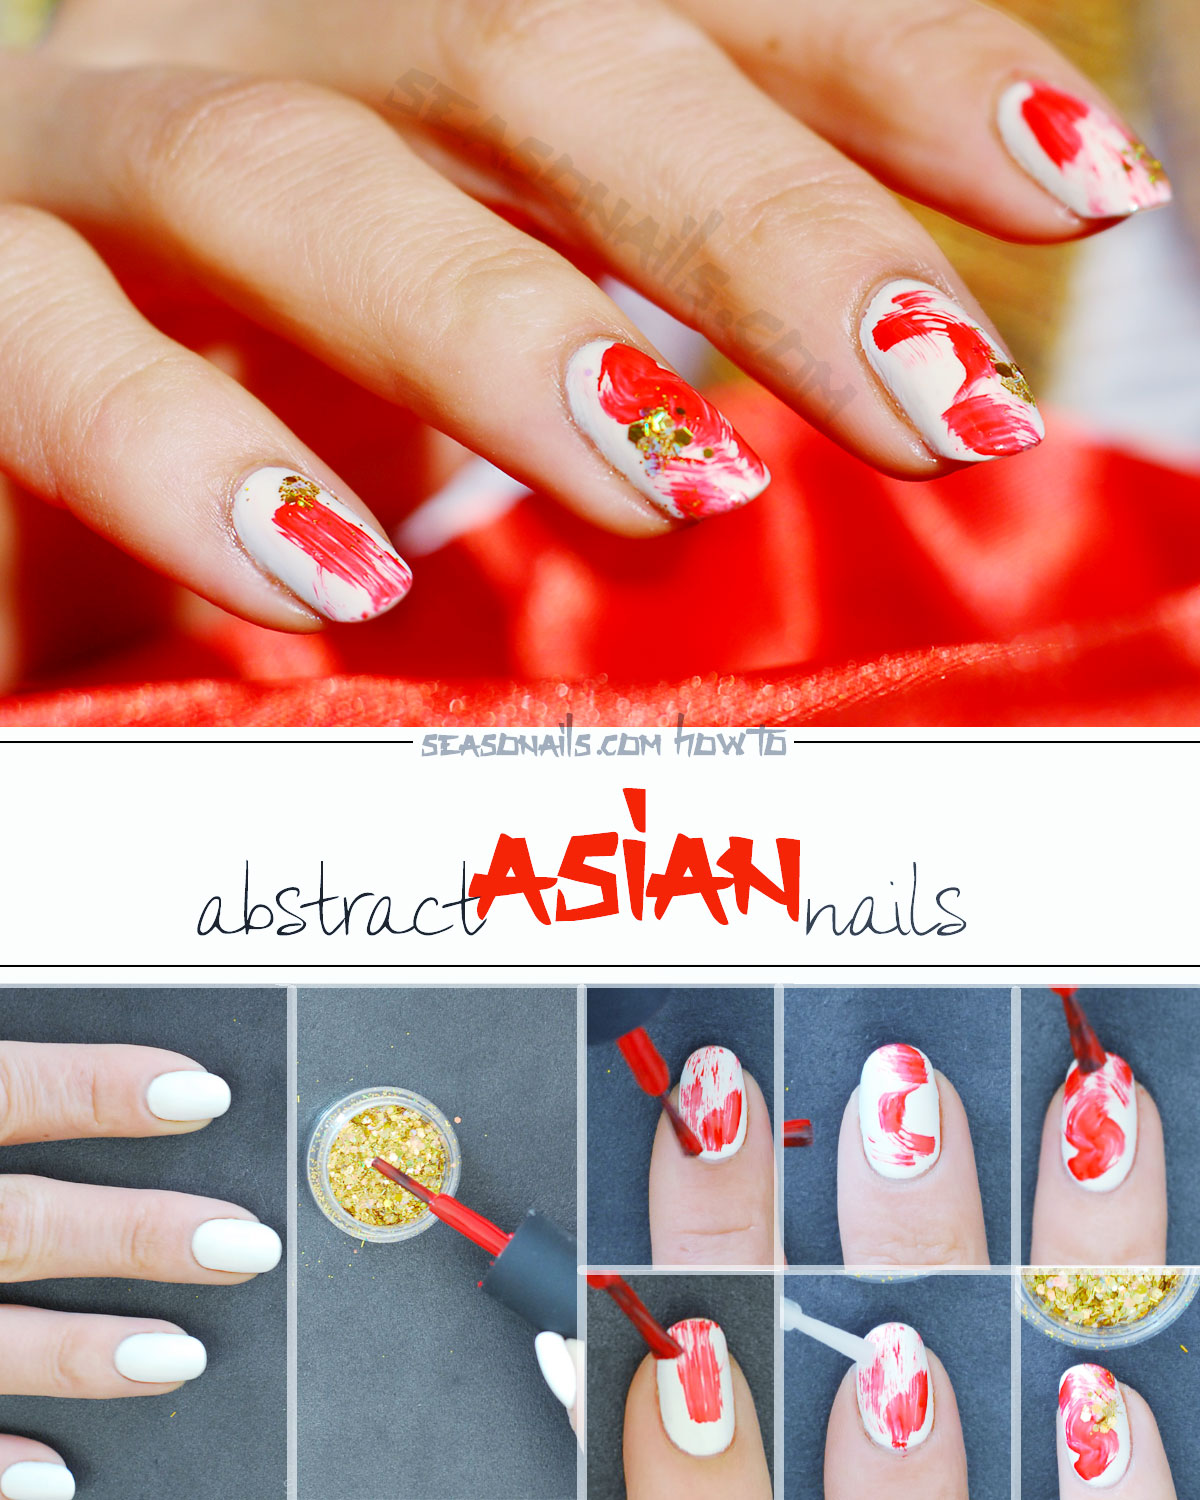 how to abstract asian nails met gala tutorial